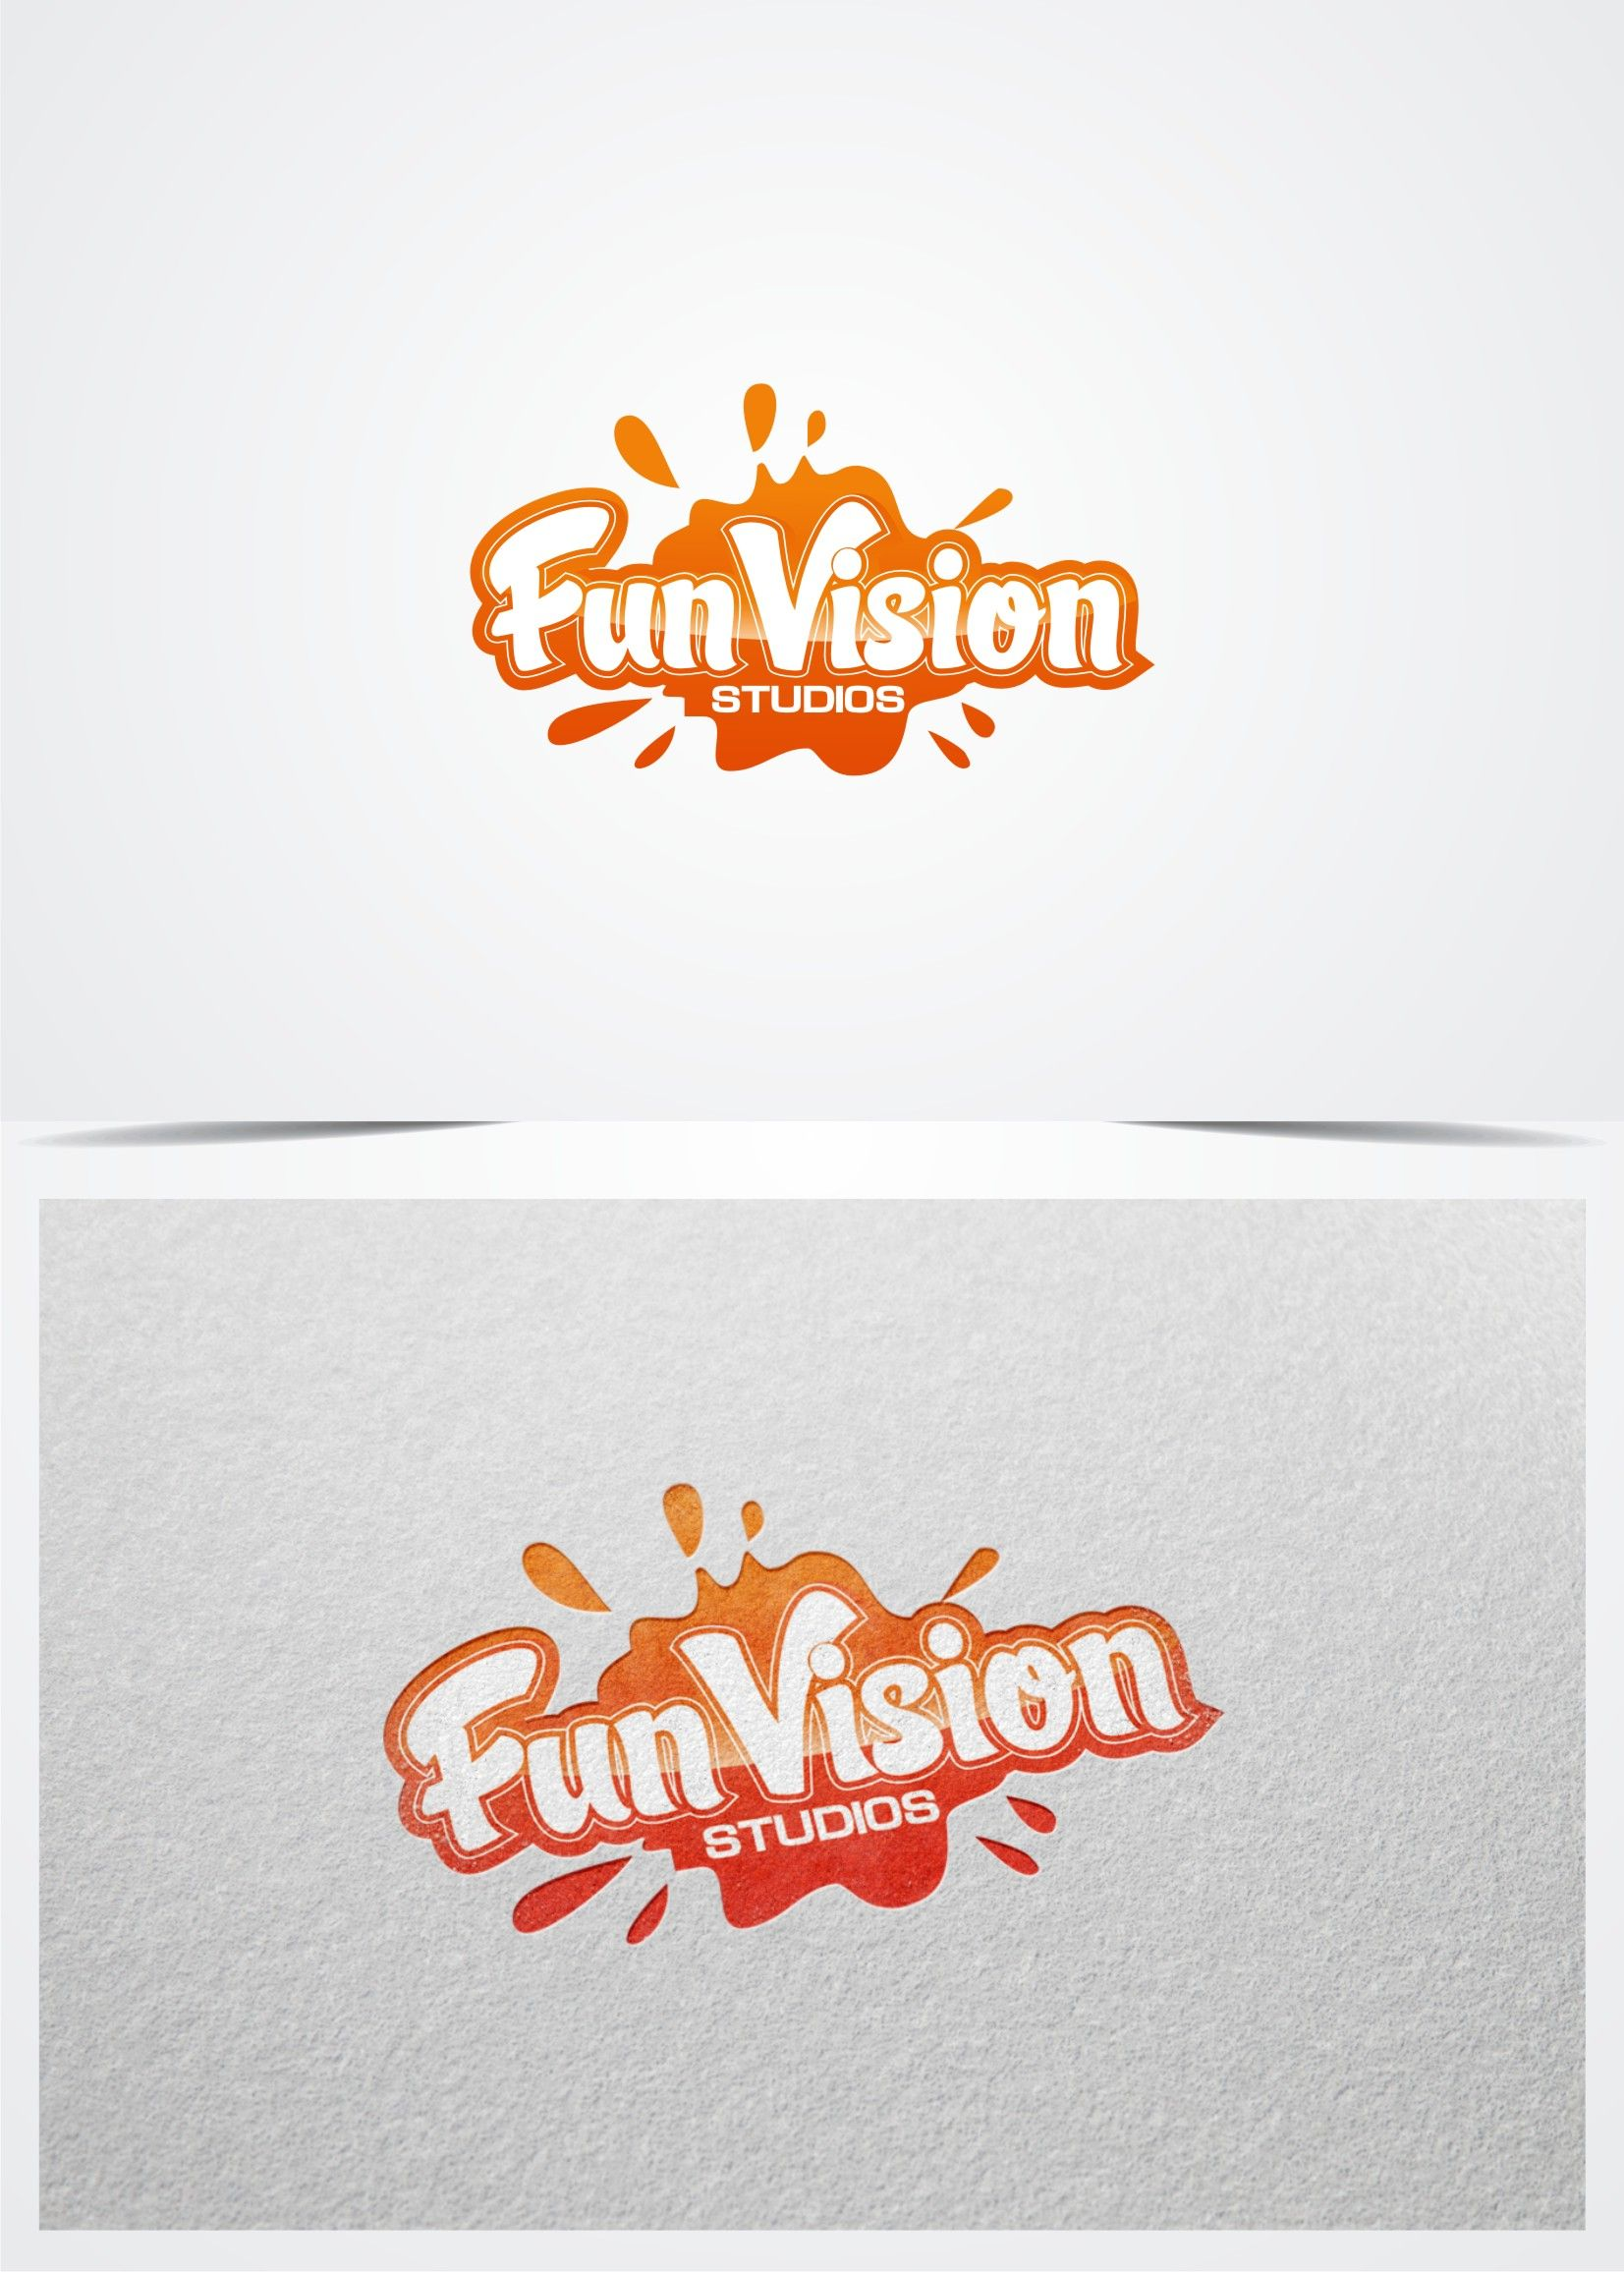 New logo wanted for Fun Vision Studios - a small indie game studio